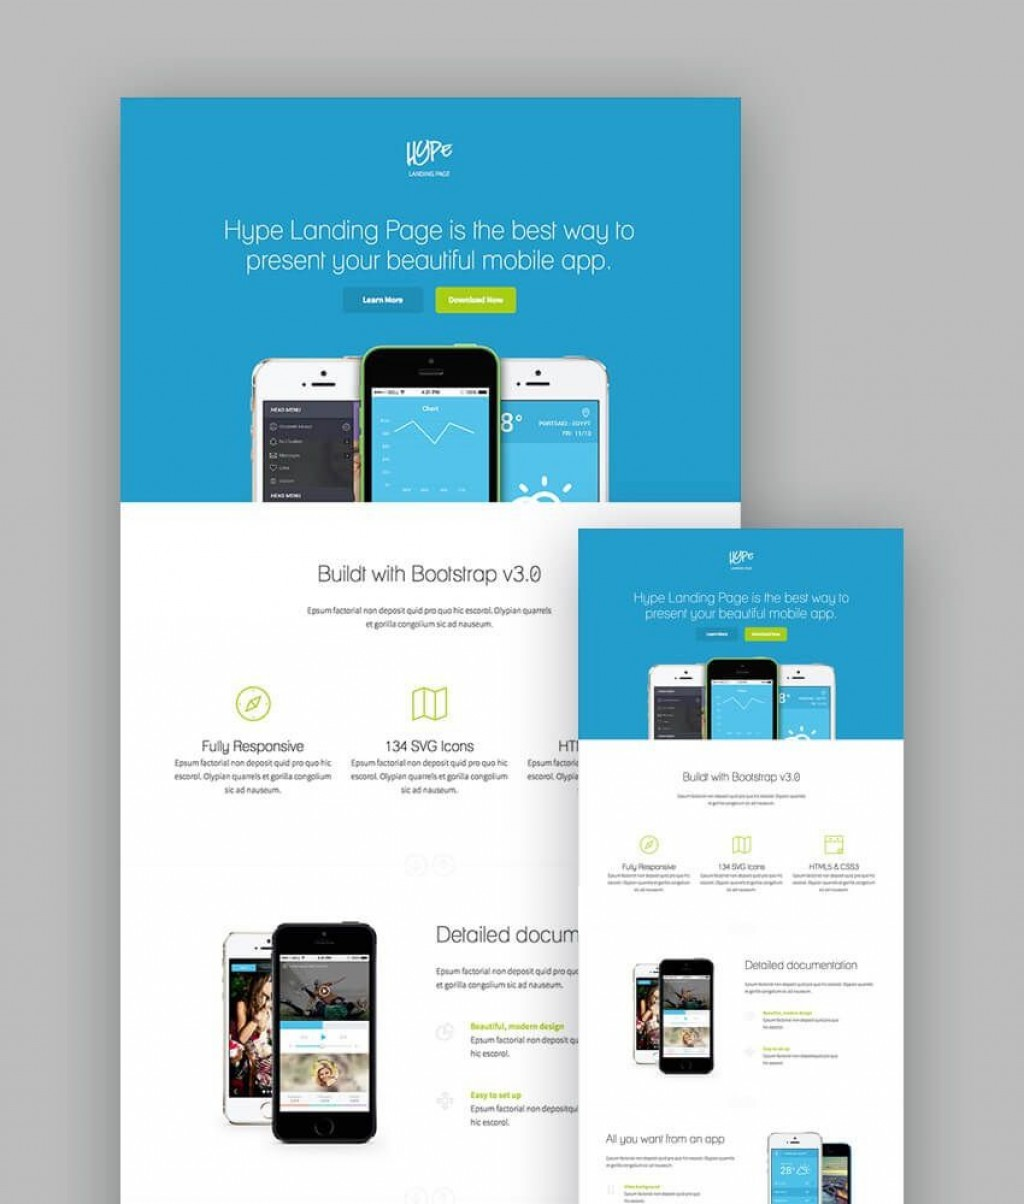 002 Best Csvape Esponsive Mobile App Landing Page Html Template Free Download Highest Clarity  Csvape-responsive-mobile-app-landing-page-html-templateLarge